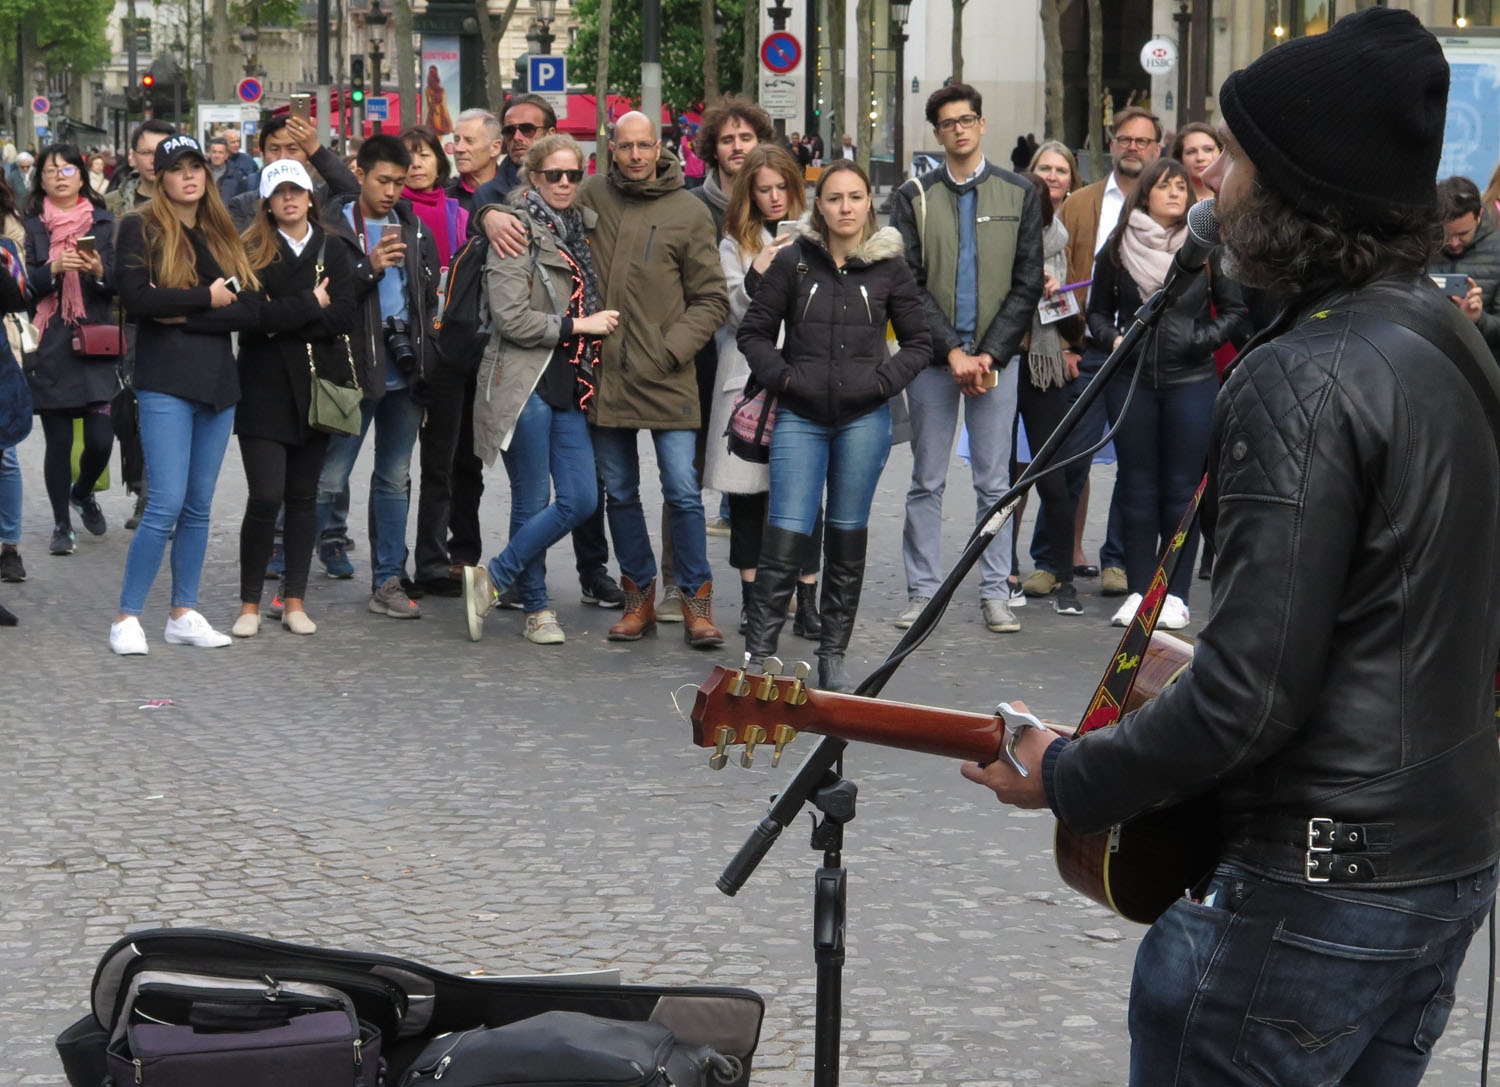 France-Paris-Street-Scenes-Music